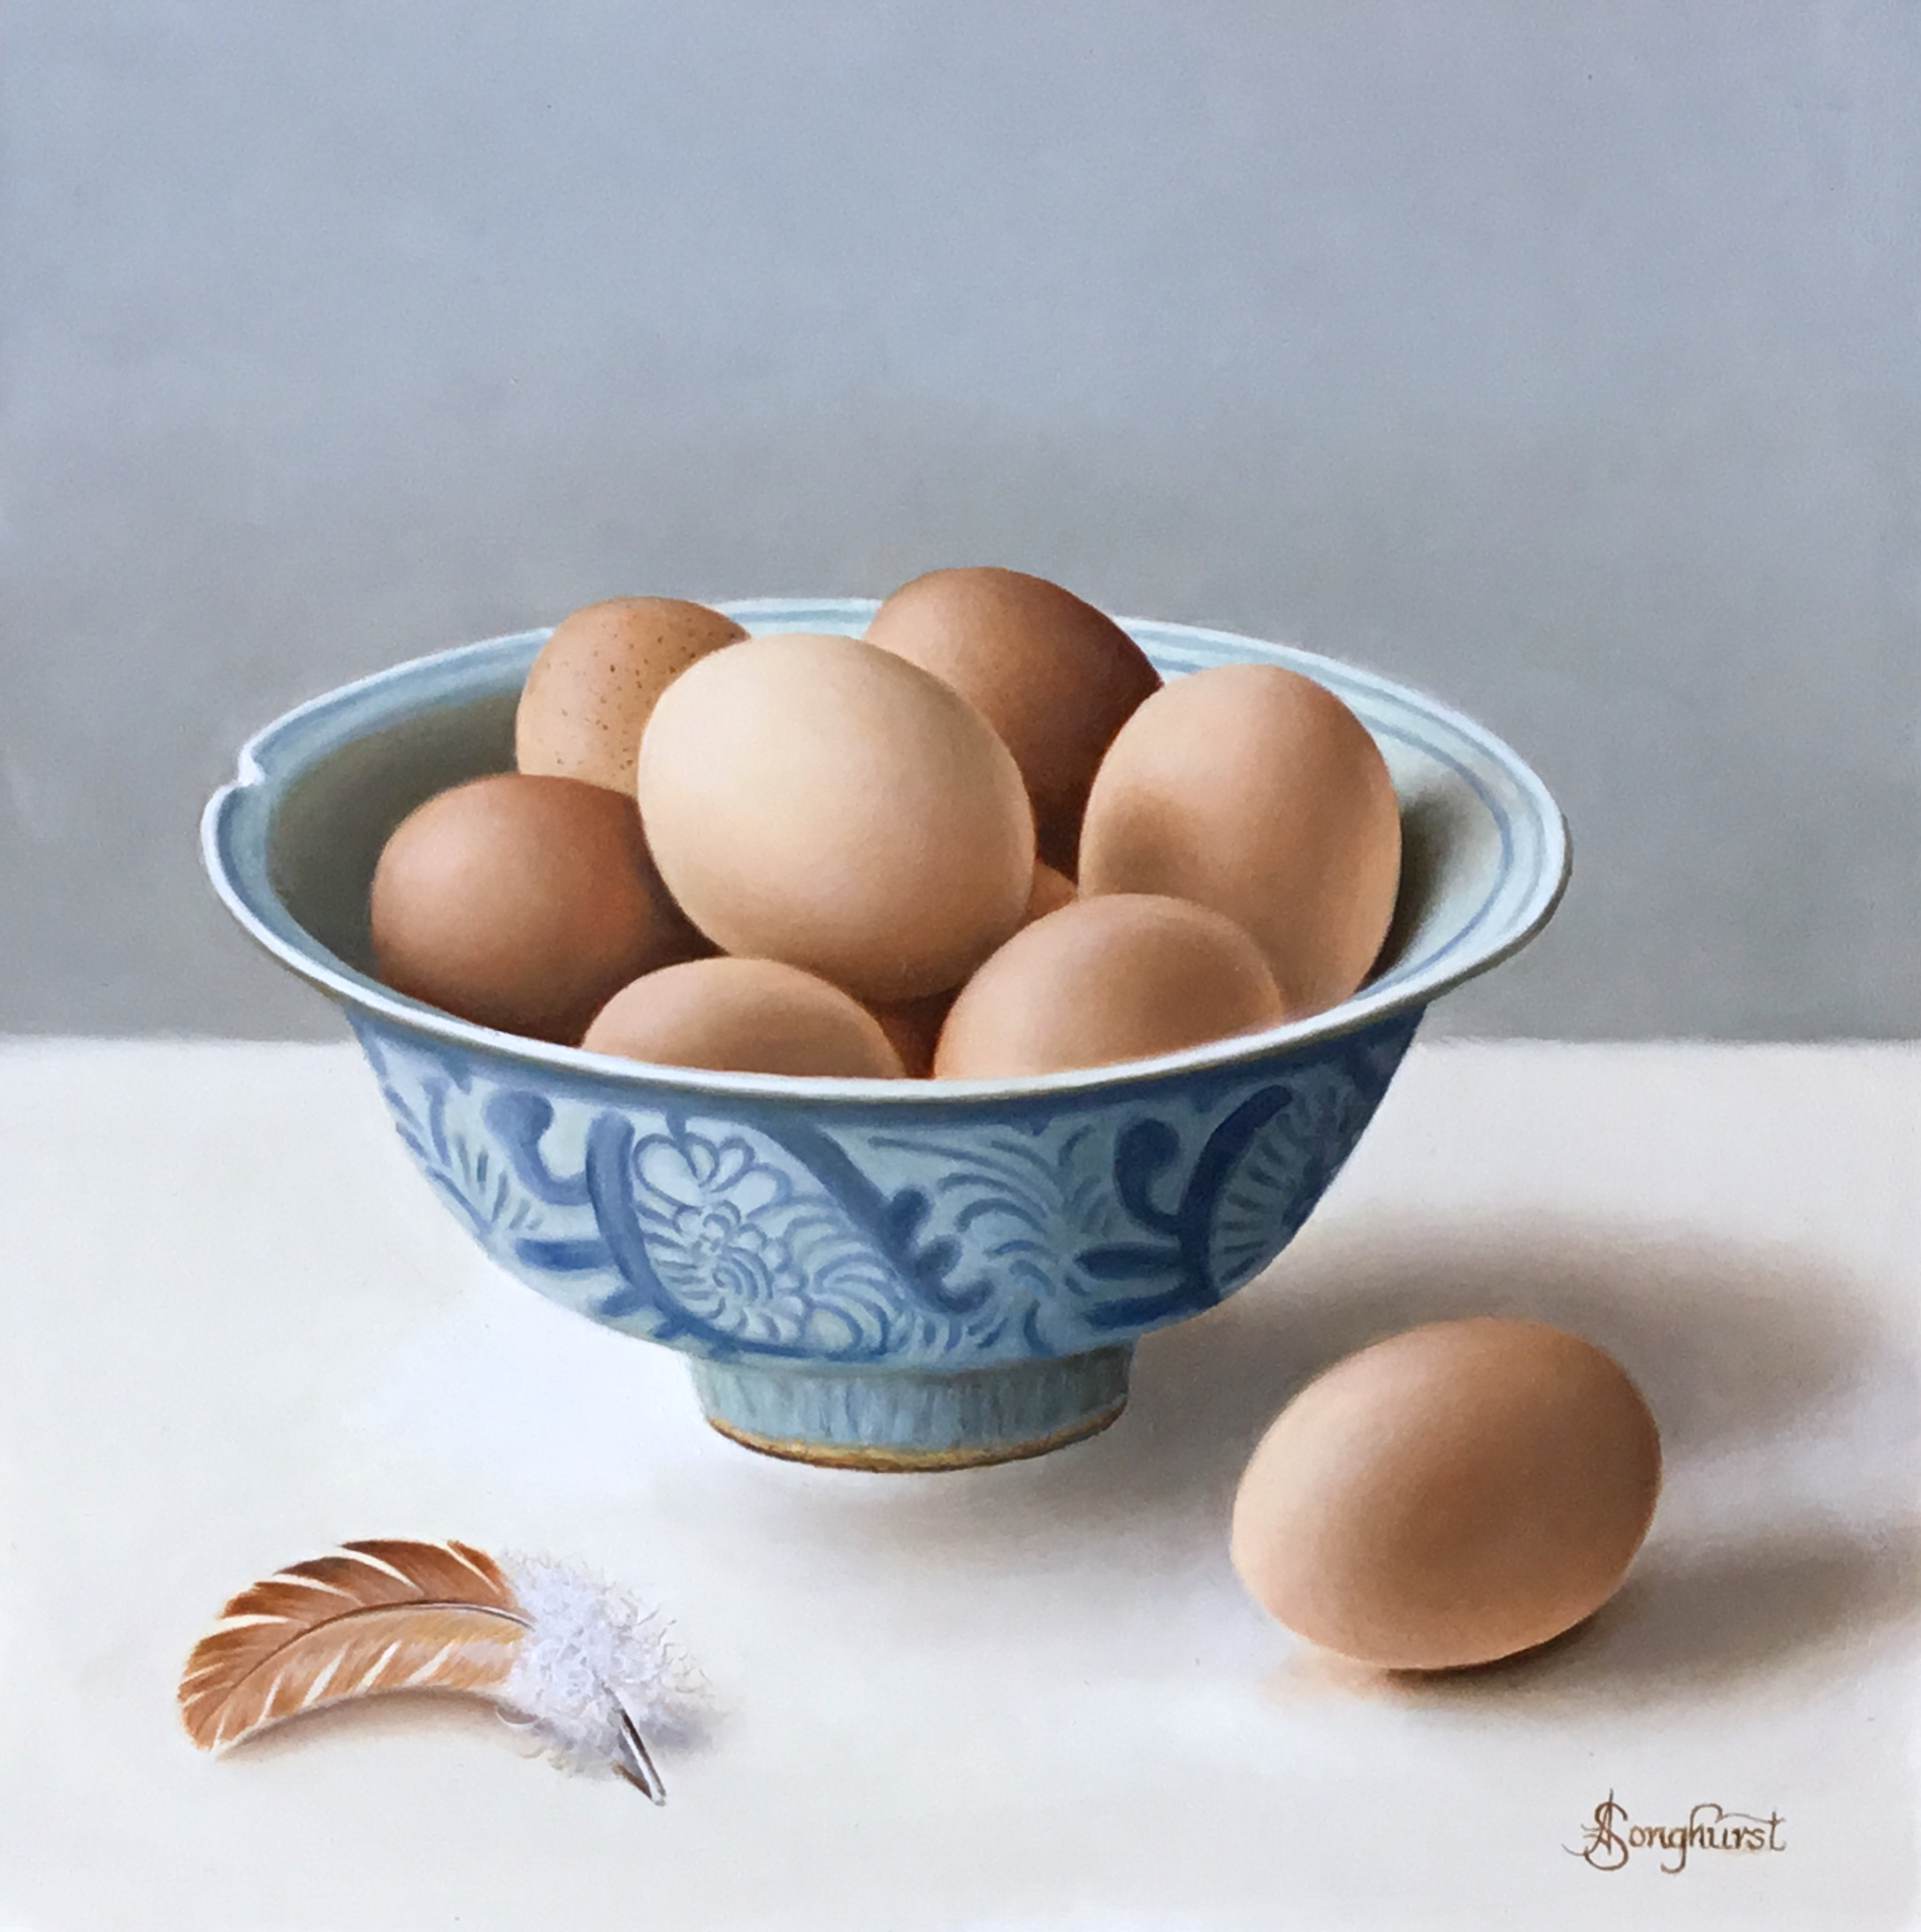 Ming Bowl with Eggs by Anne Songhurst